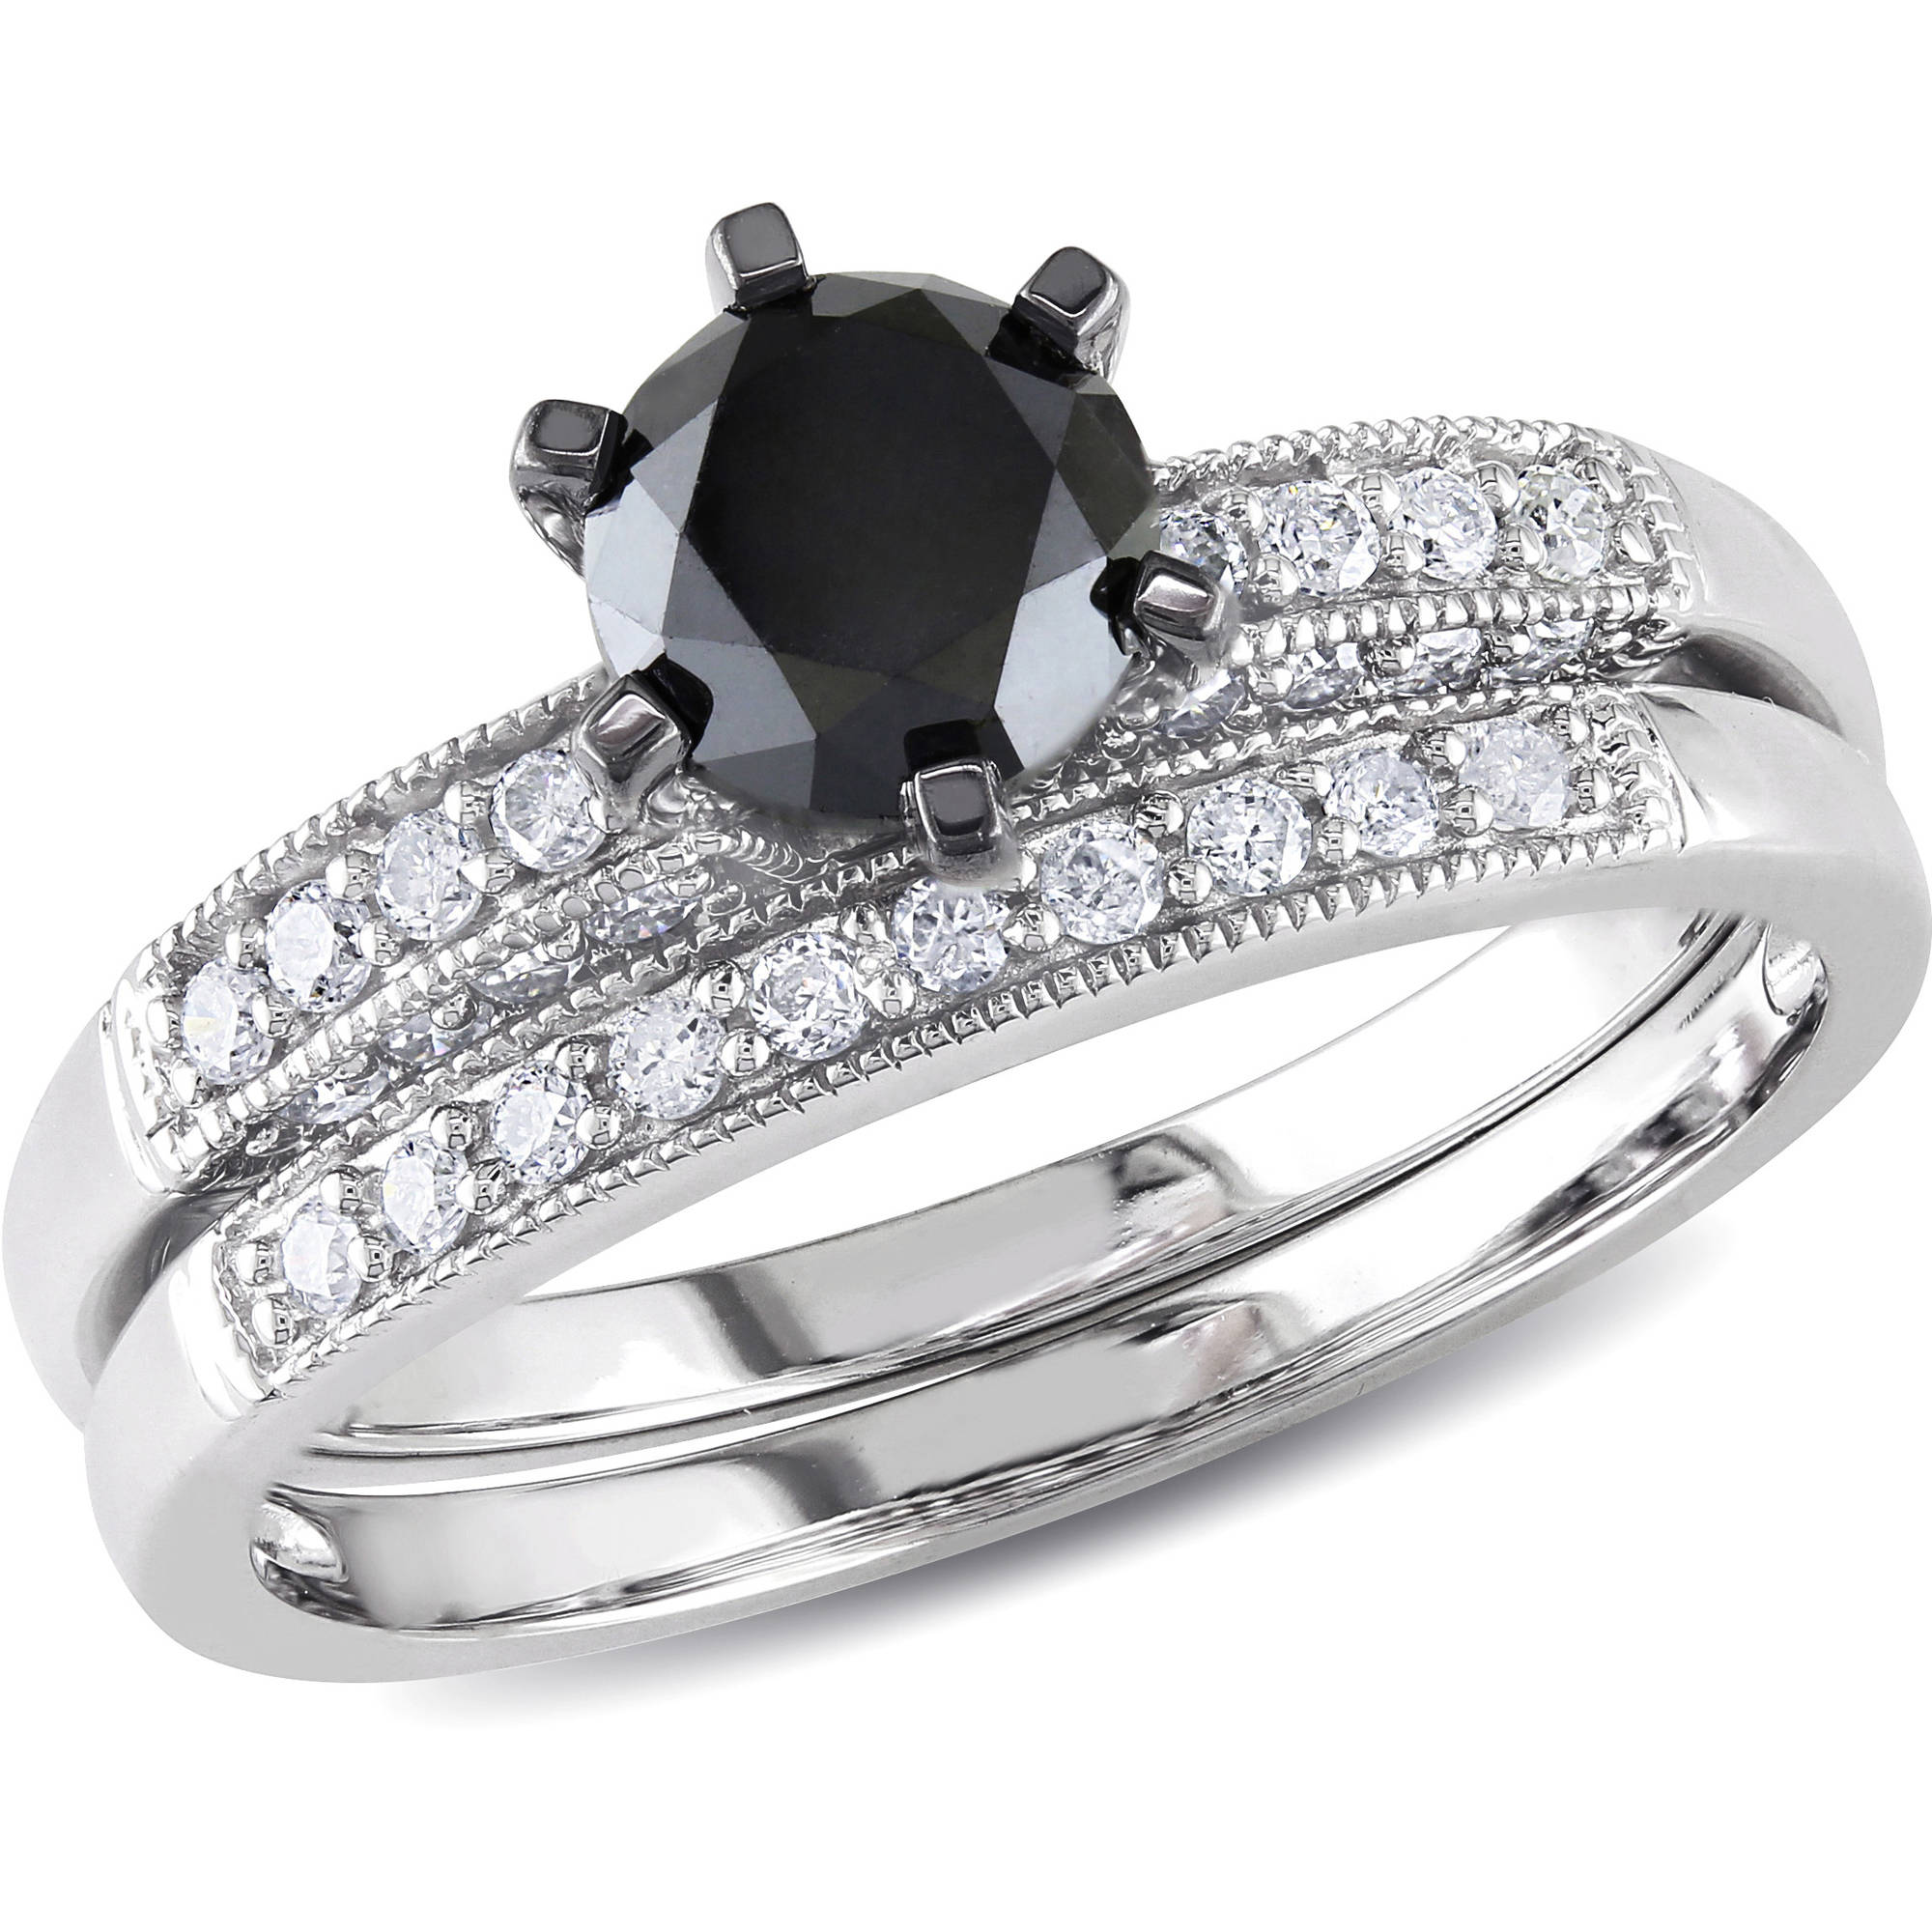 1-1/3 Carat T.W. Black and White Diamond 10kt White Gold Bridal Set